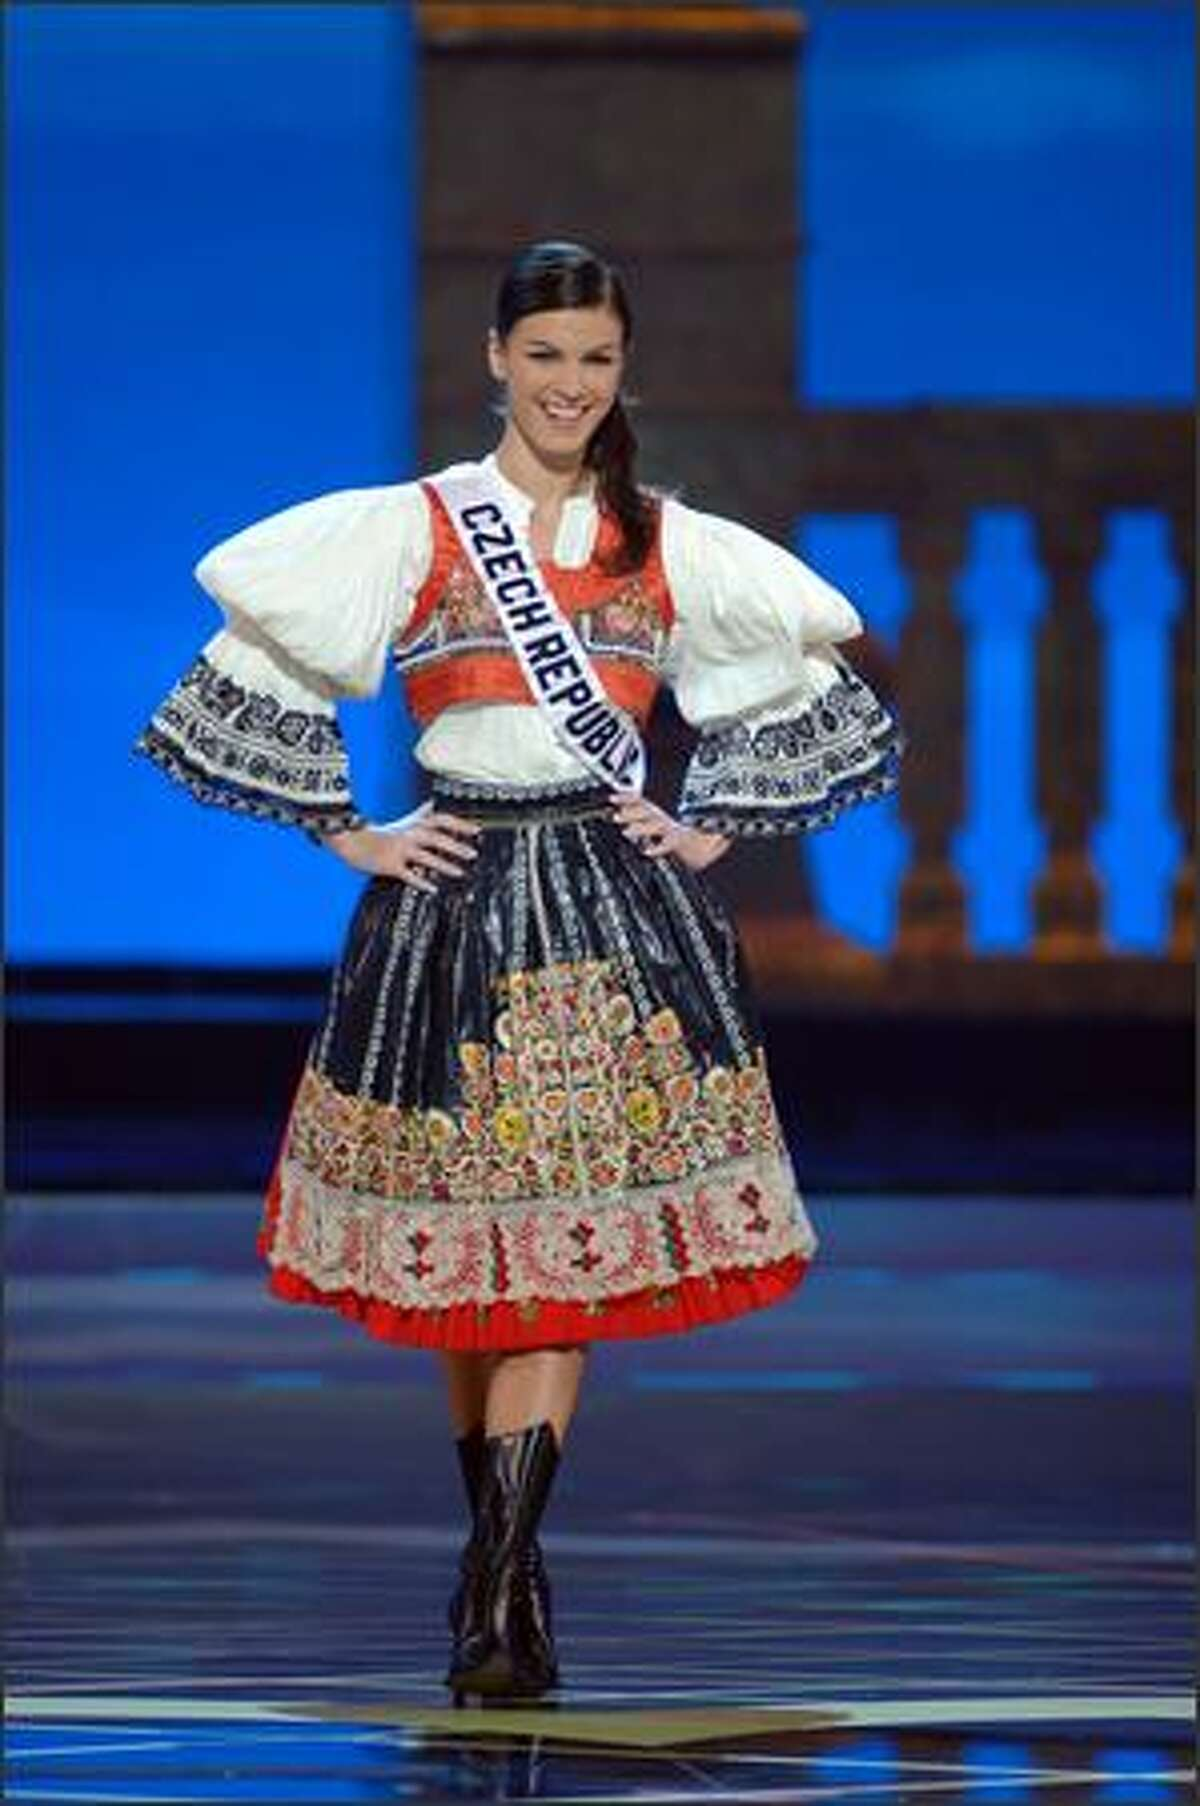 Katerina Smejkalova, Miss Czech Republic. Her costume was voted first runner-up; Miss Thailand was the winner, with Miss Mexico the second runner-up.